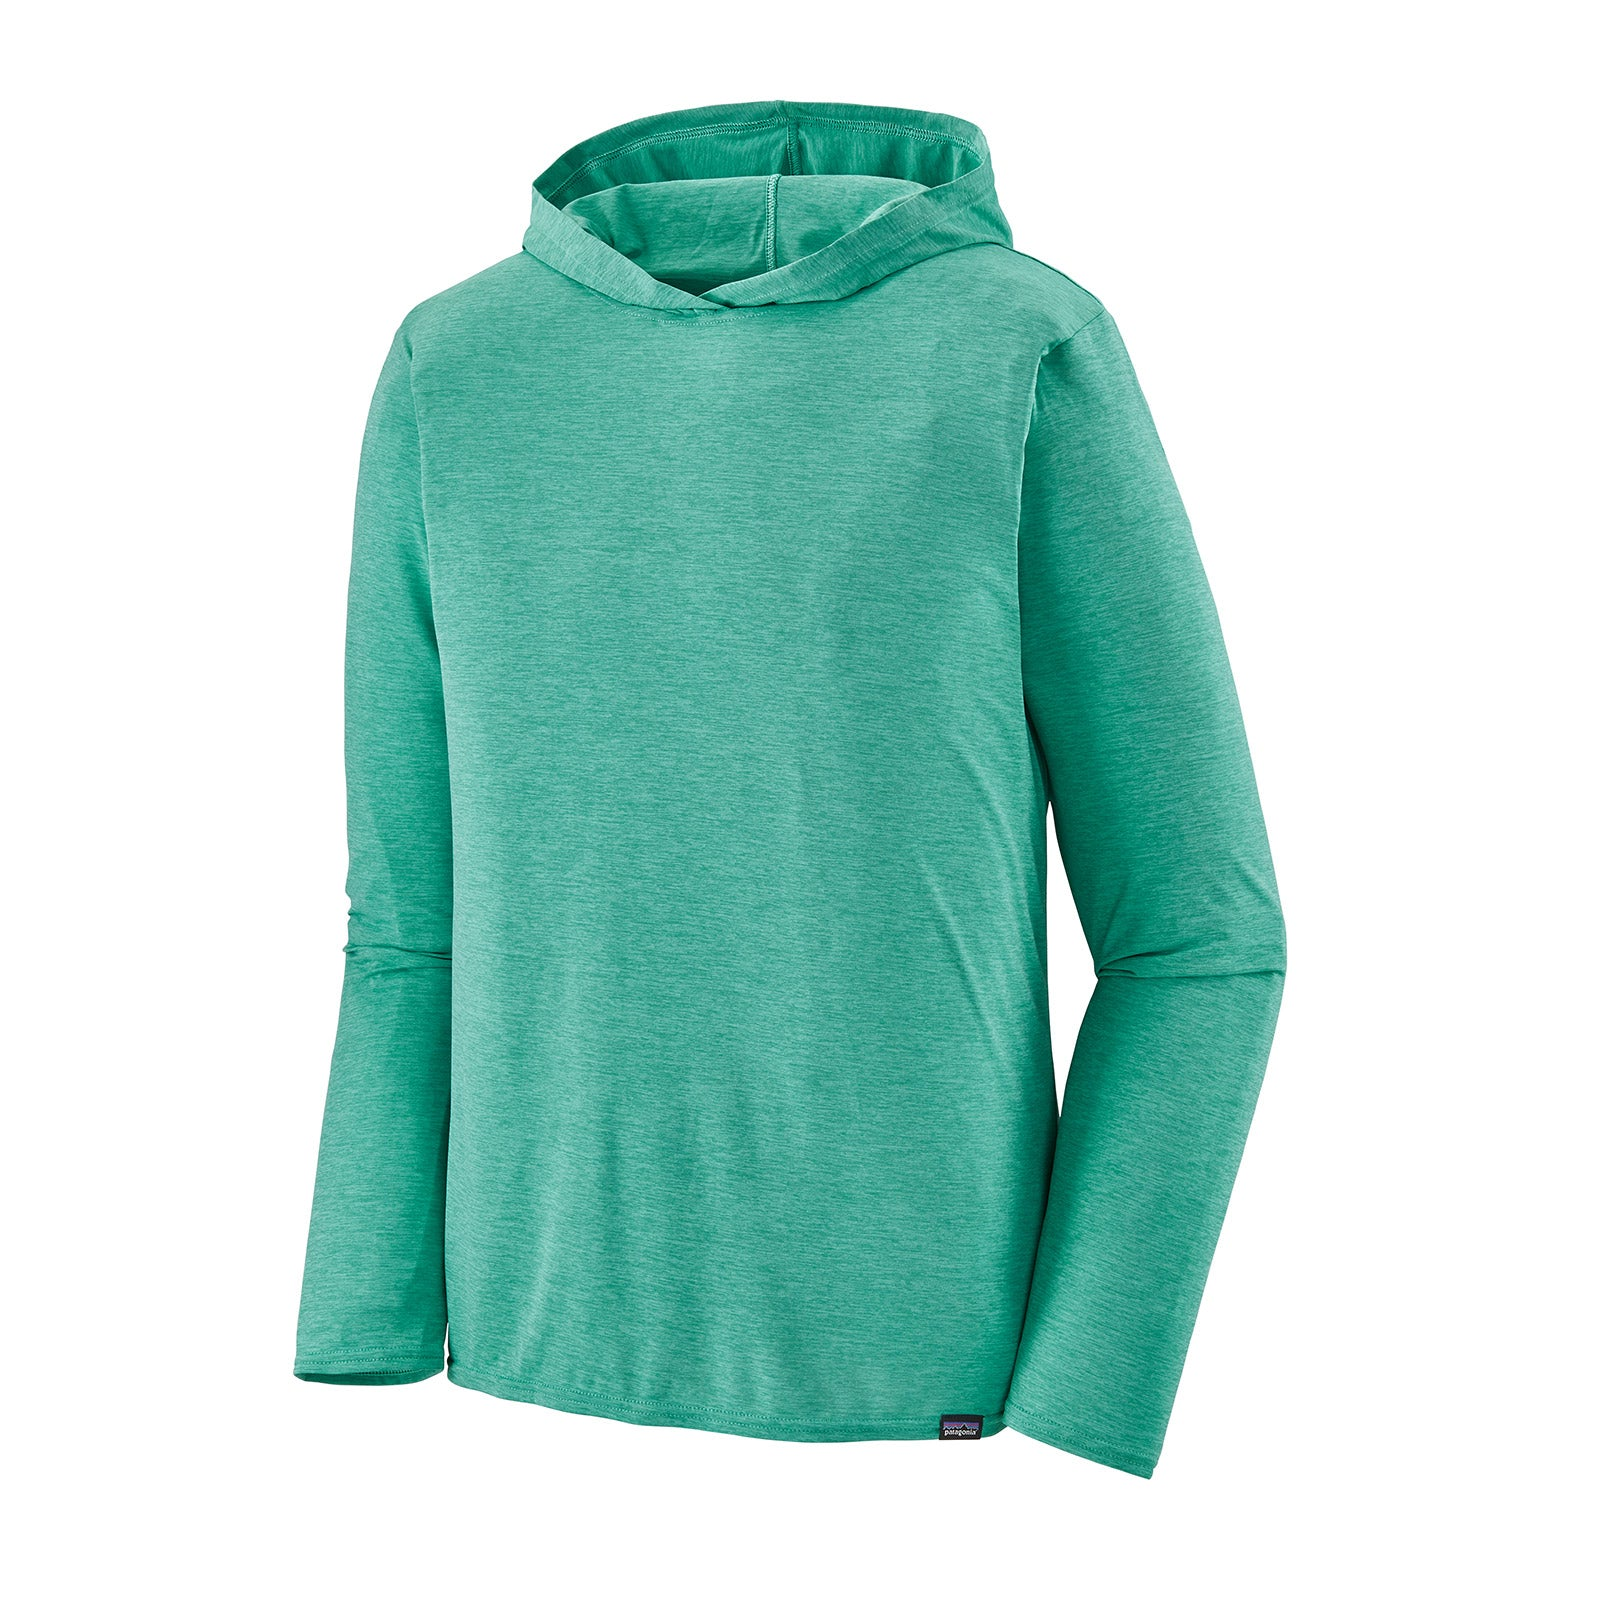 patagonia men's capilene cool daily hoody in light beryl green